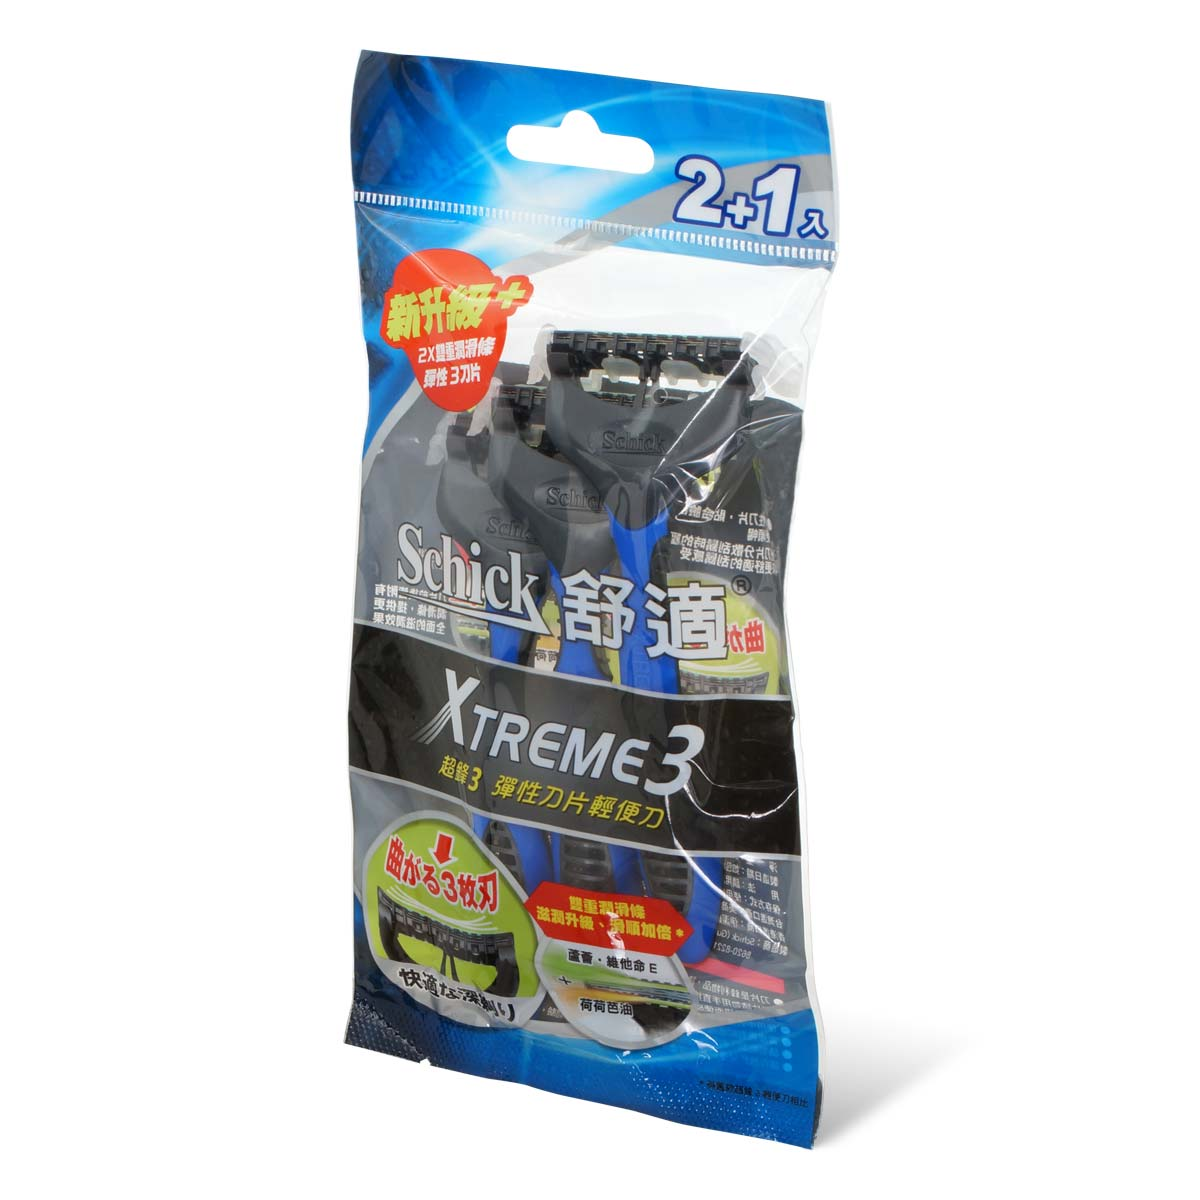 Schick Xtreme3 Disposable Razor 3's